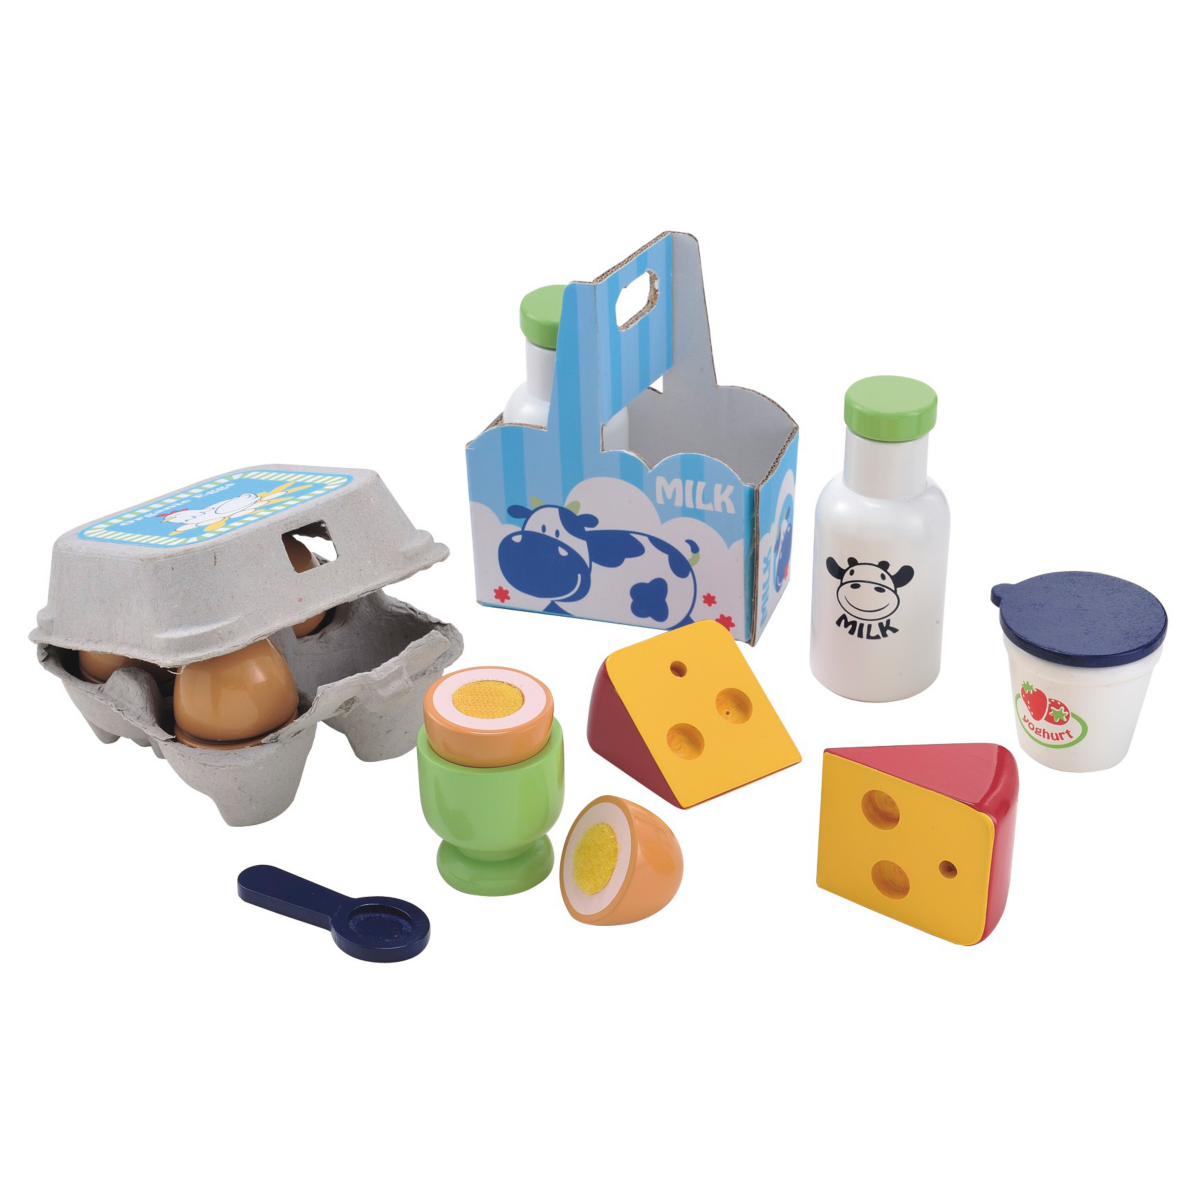 Early Learning Centre Wooden Dairy and Eggs Set